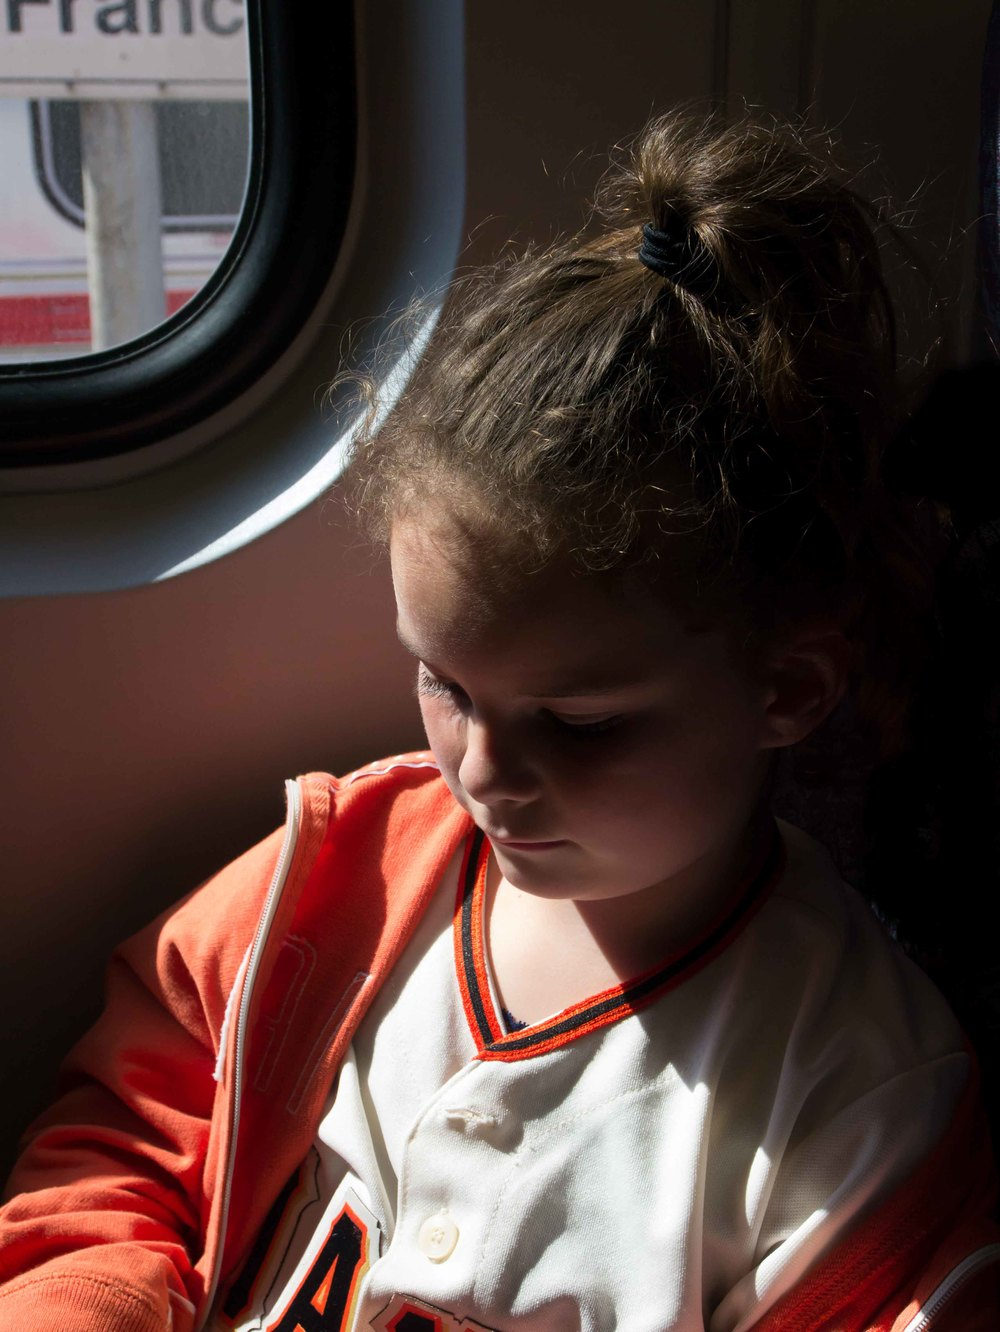 I just loved how the light was shining through the train window.